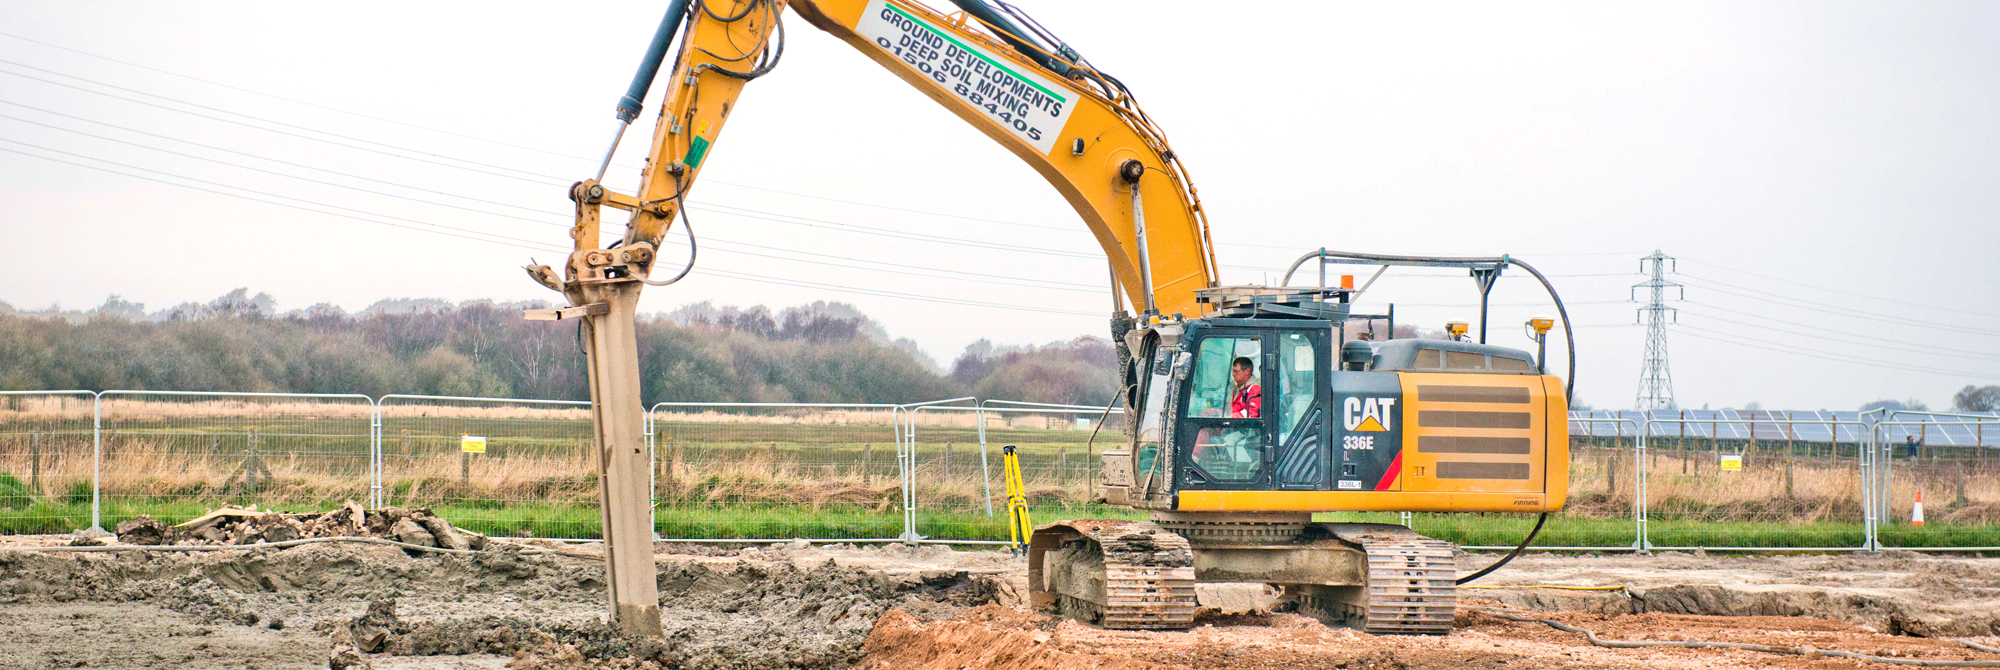 soil remediation applications and new technologies